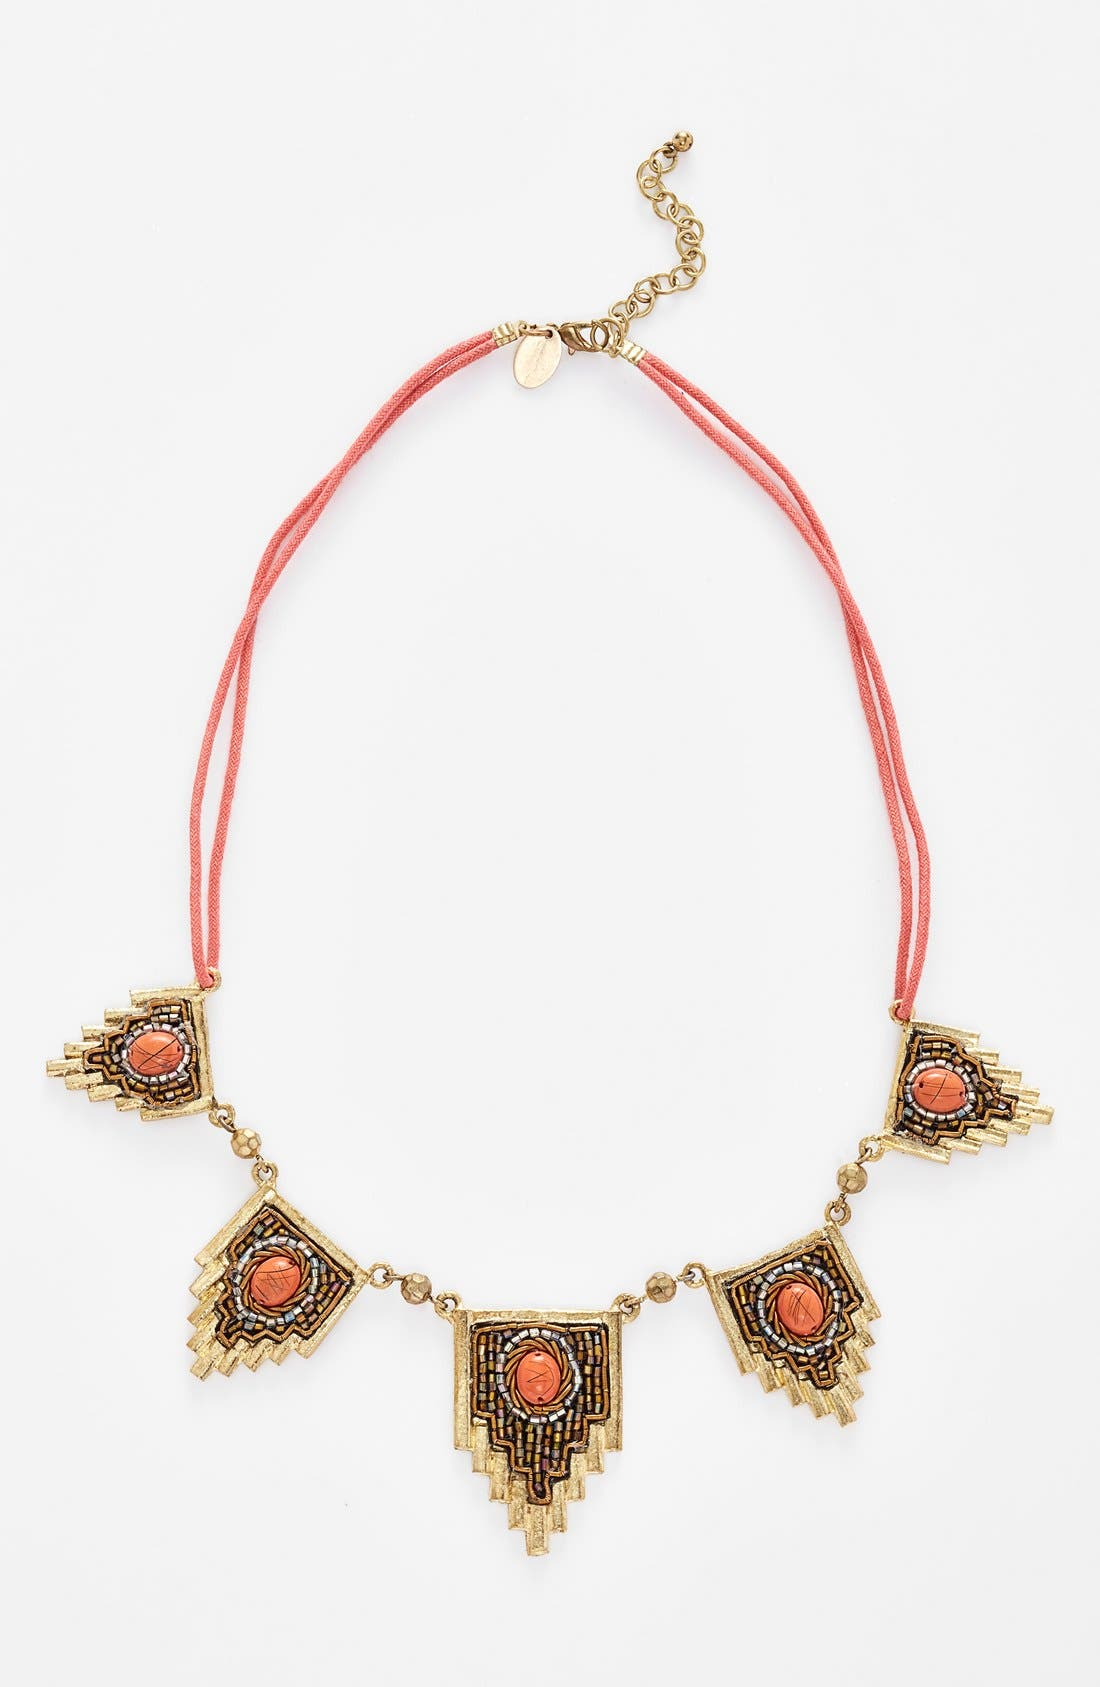 Main Image - Berry 'Egyptian' Beaded Statement Necklace